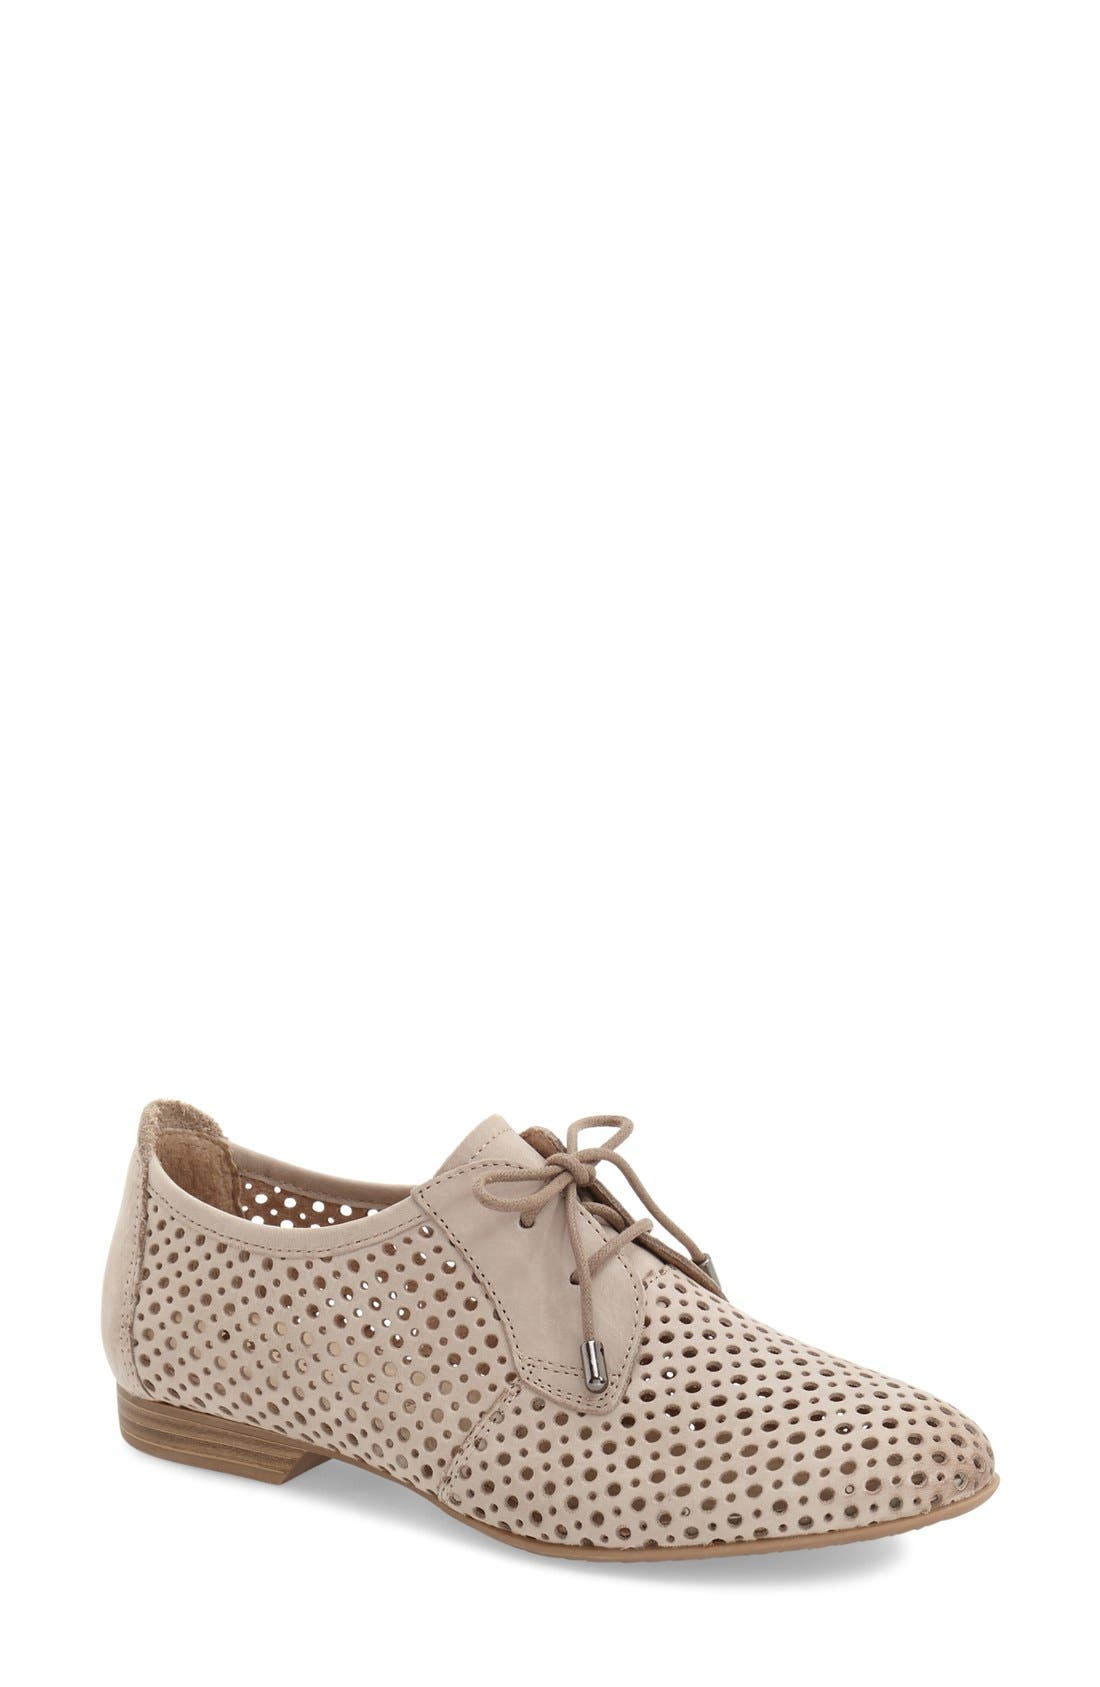 'Drene' Perforated Oxford,                             Main thumbnail 1, color,                             Pepper Suede